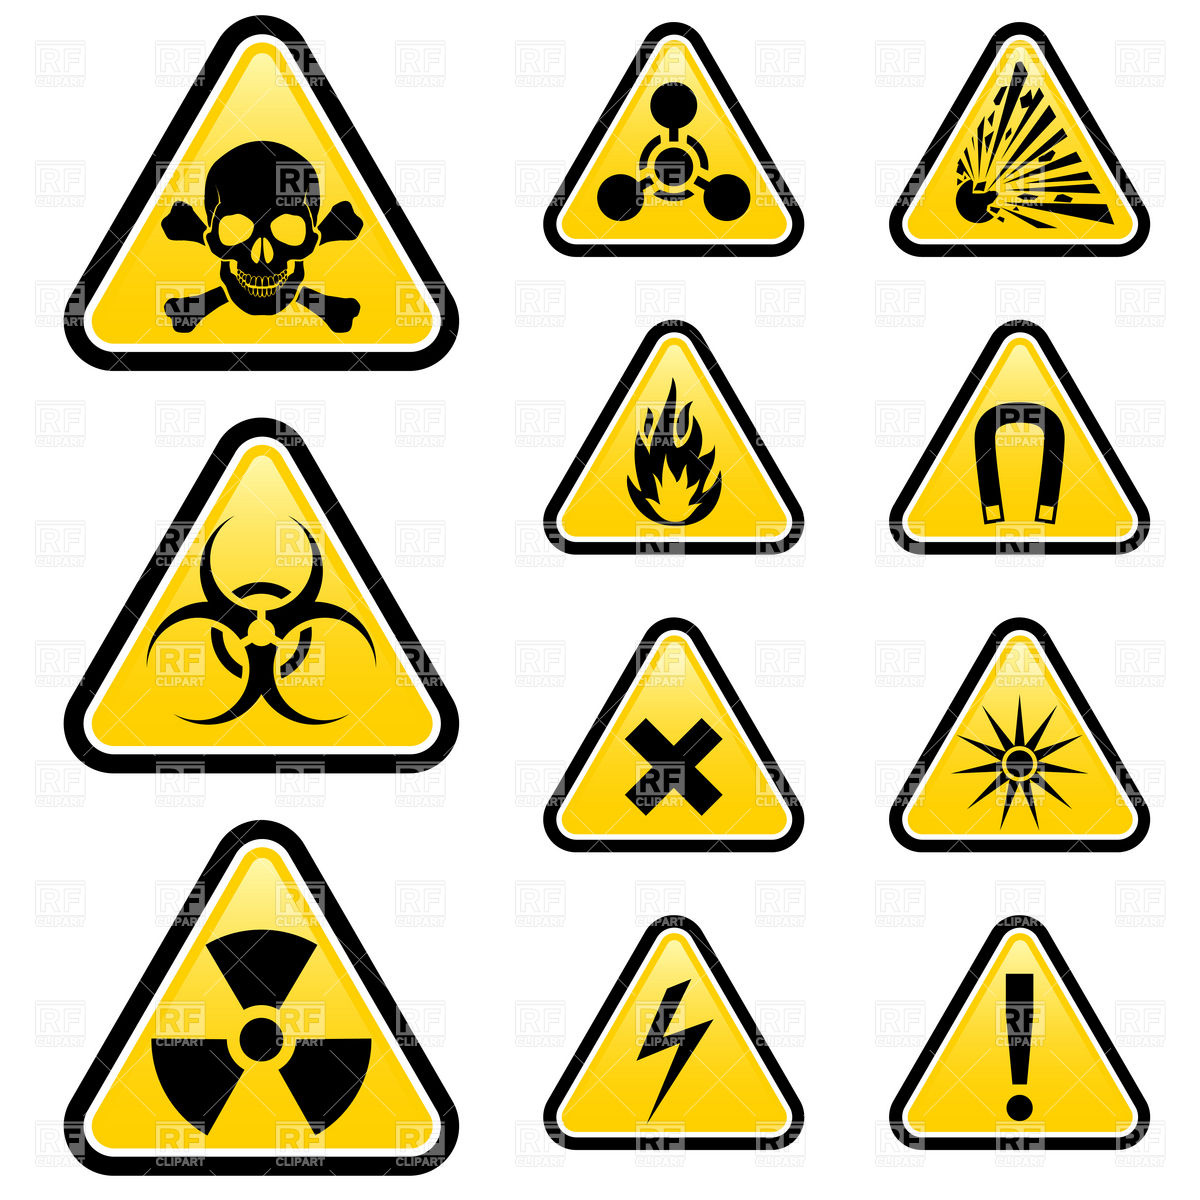 Caution clipart alert sign. Free warning icons download